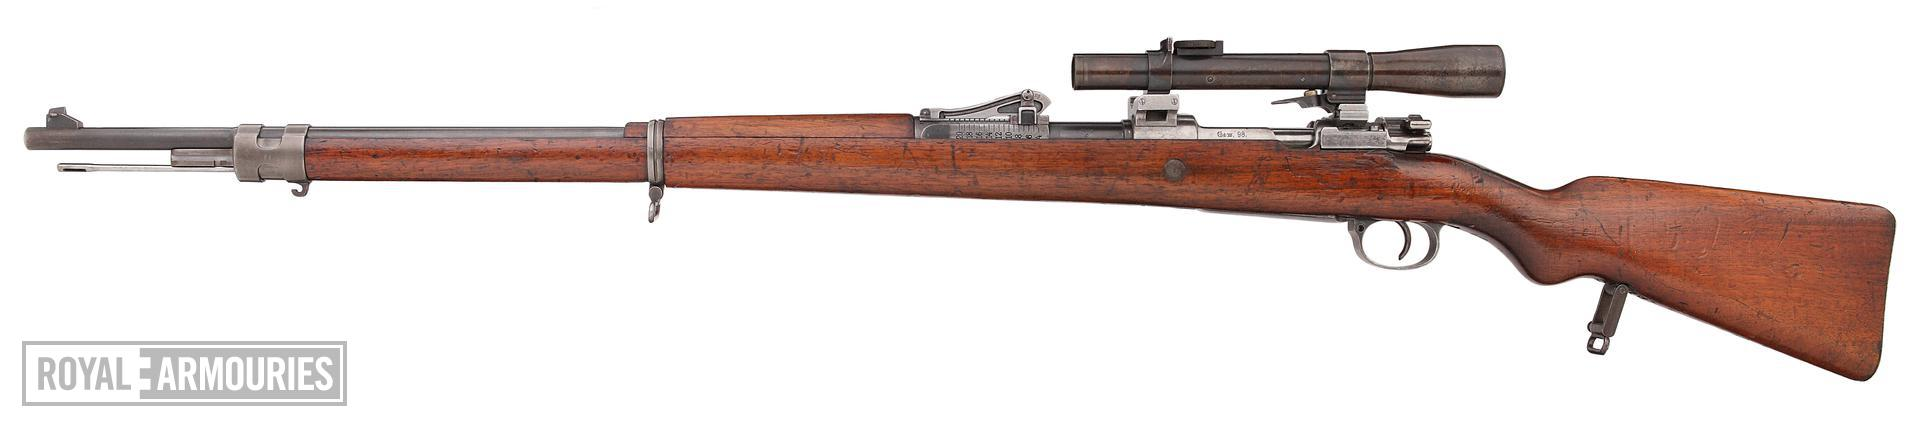 Mauser Gewehr 98 rifle and bayonet - Arms of the First World War